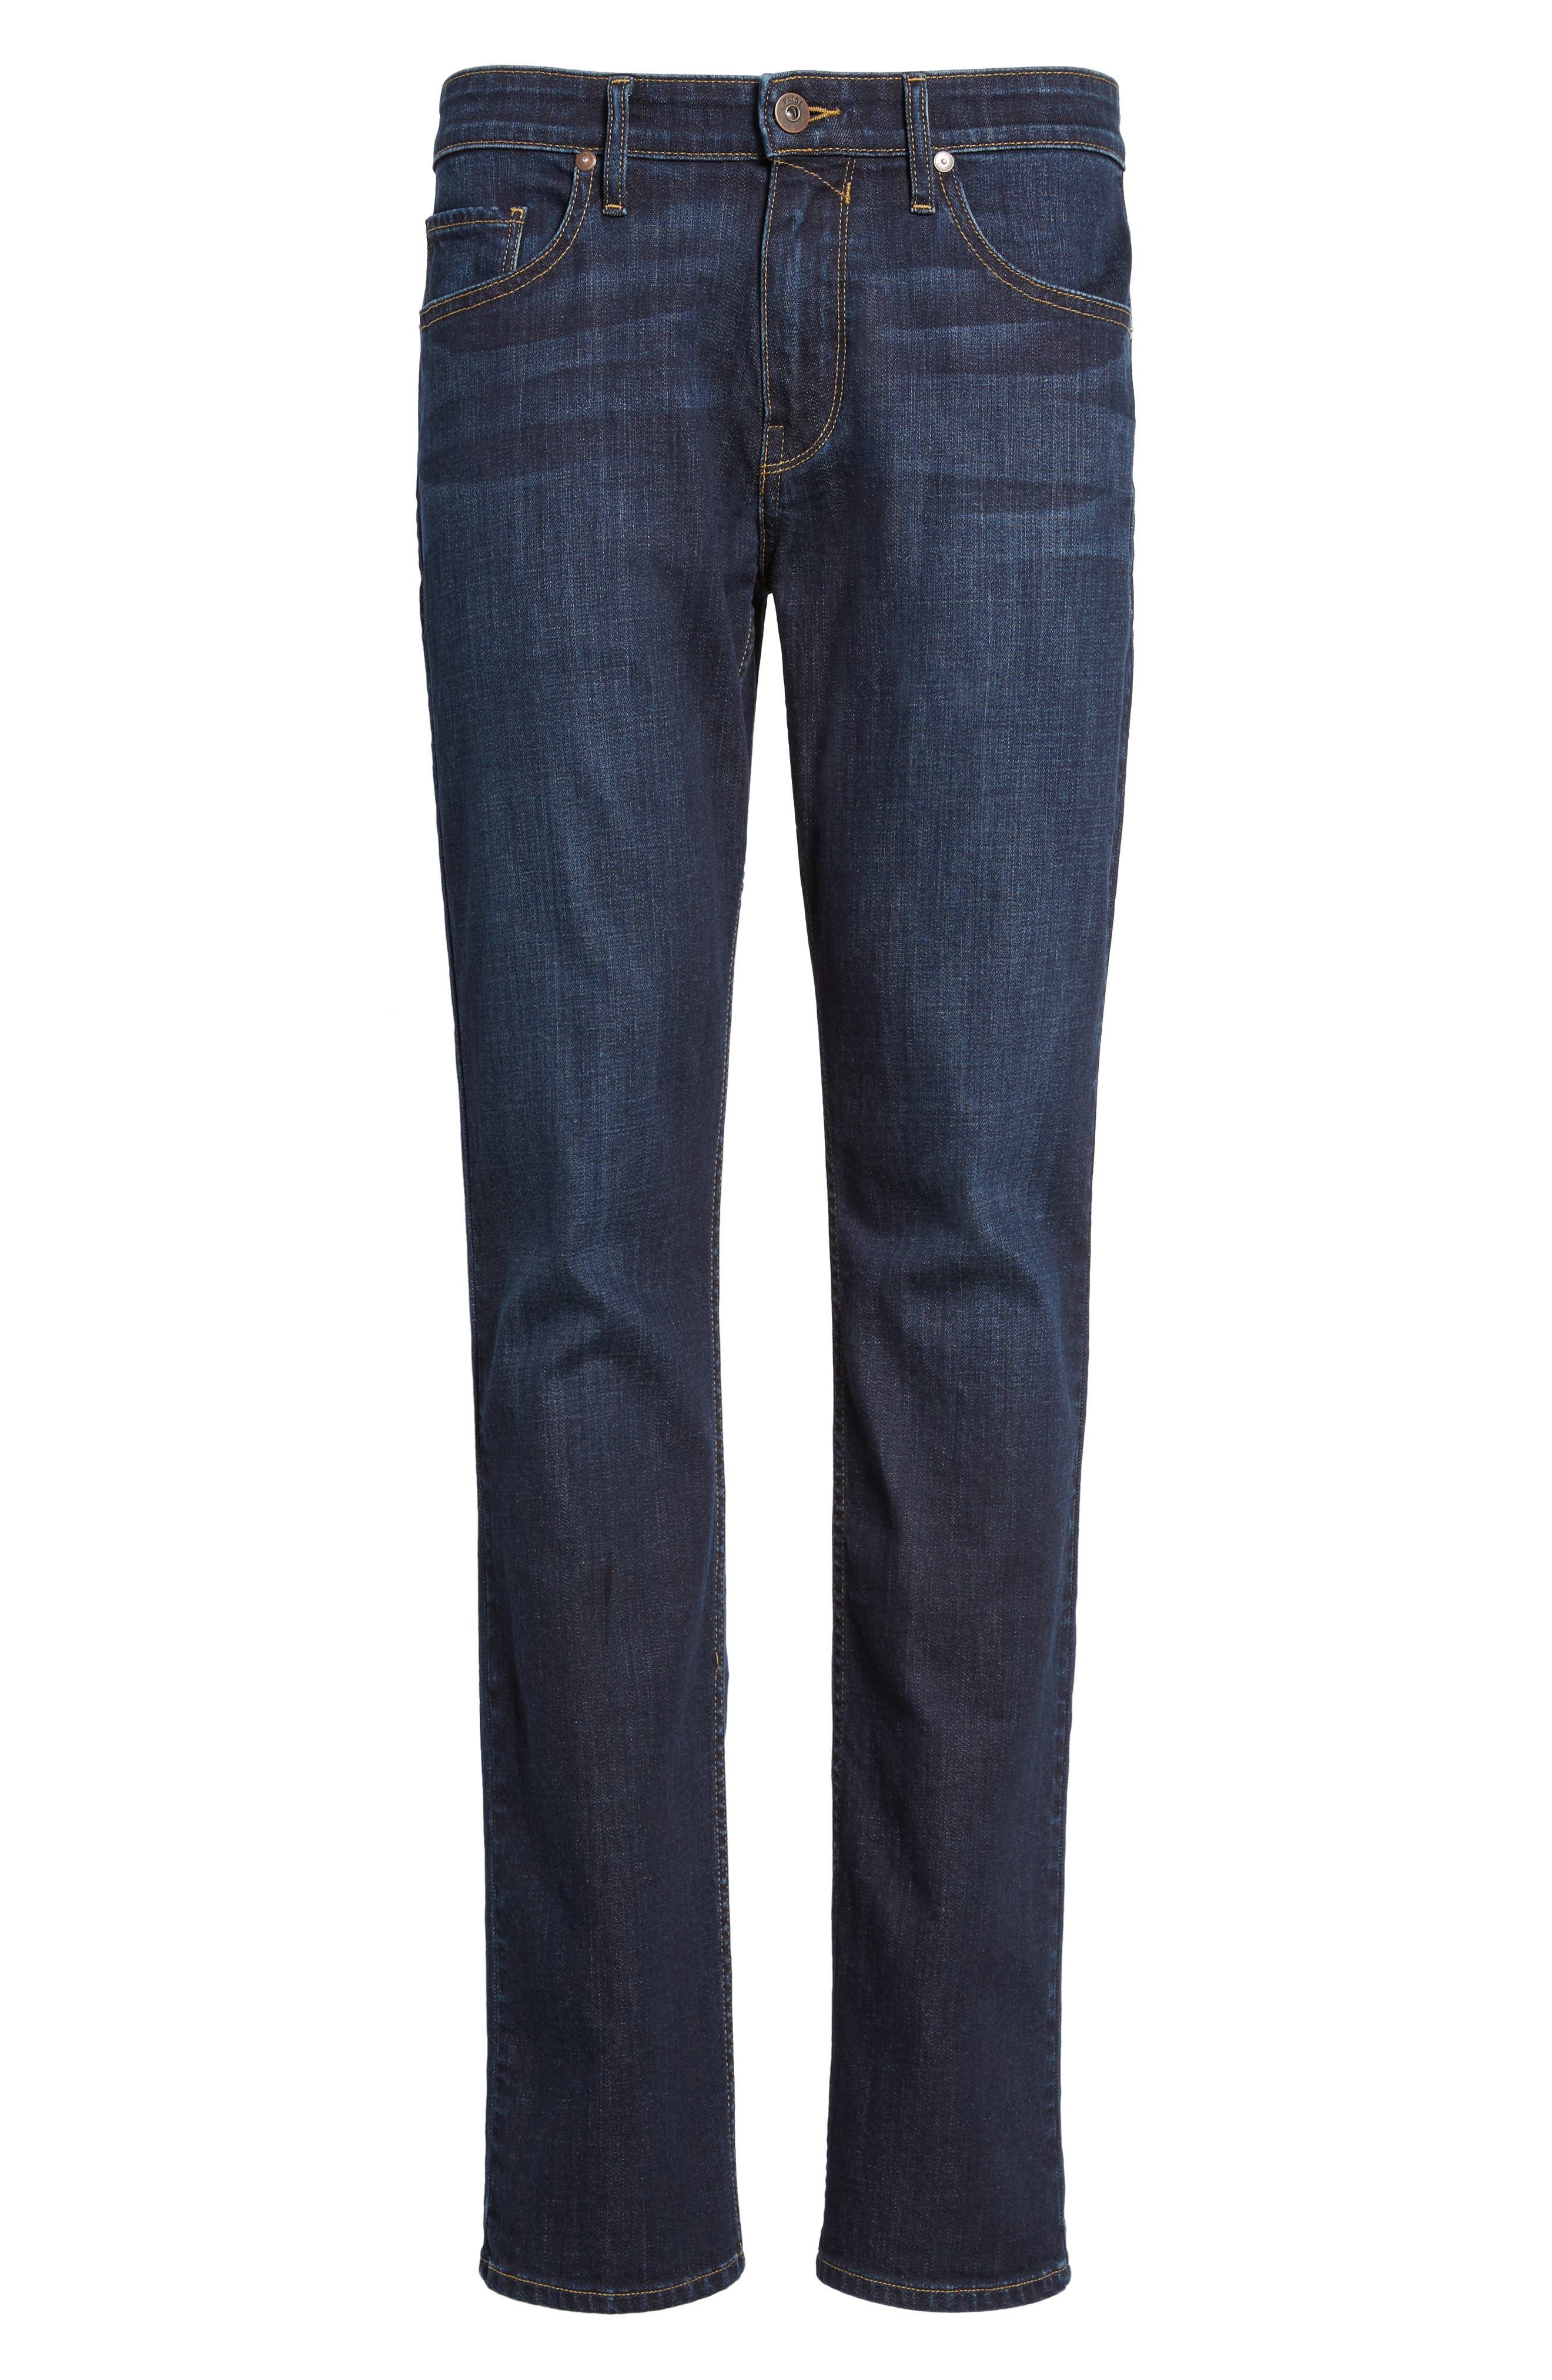 Federal Slim Straight Fit Jeans,                             Alternate thumbnail 6, color,                             Ralston